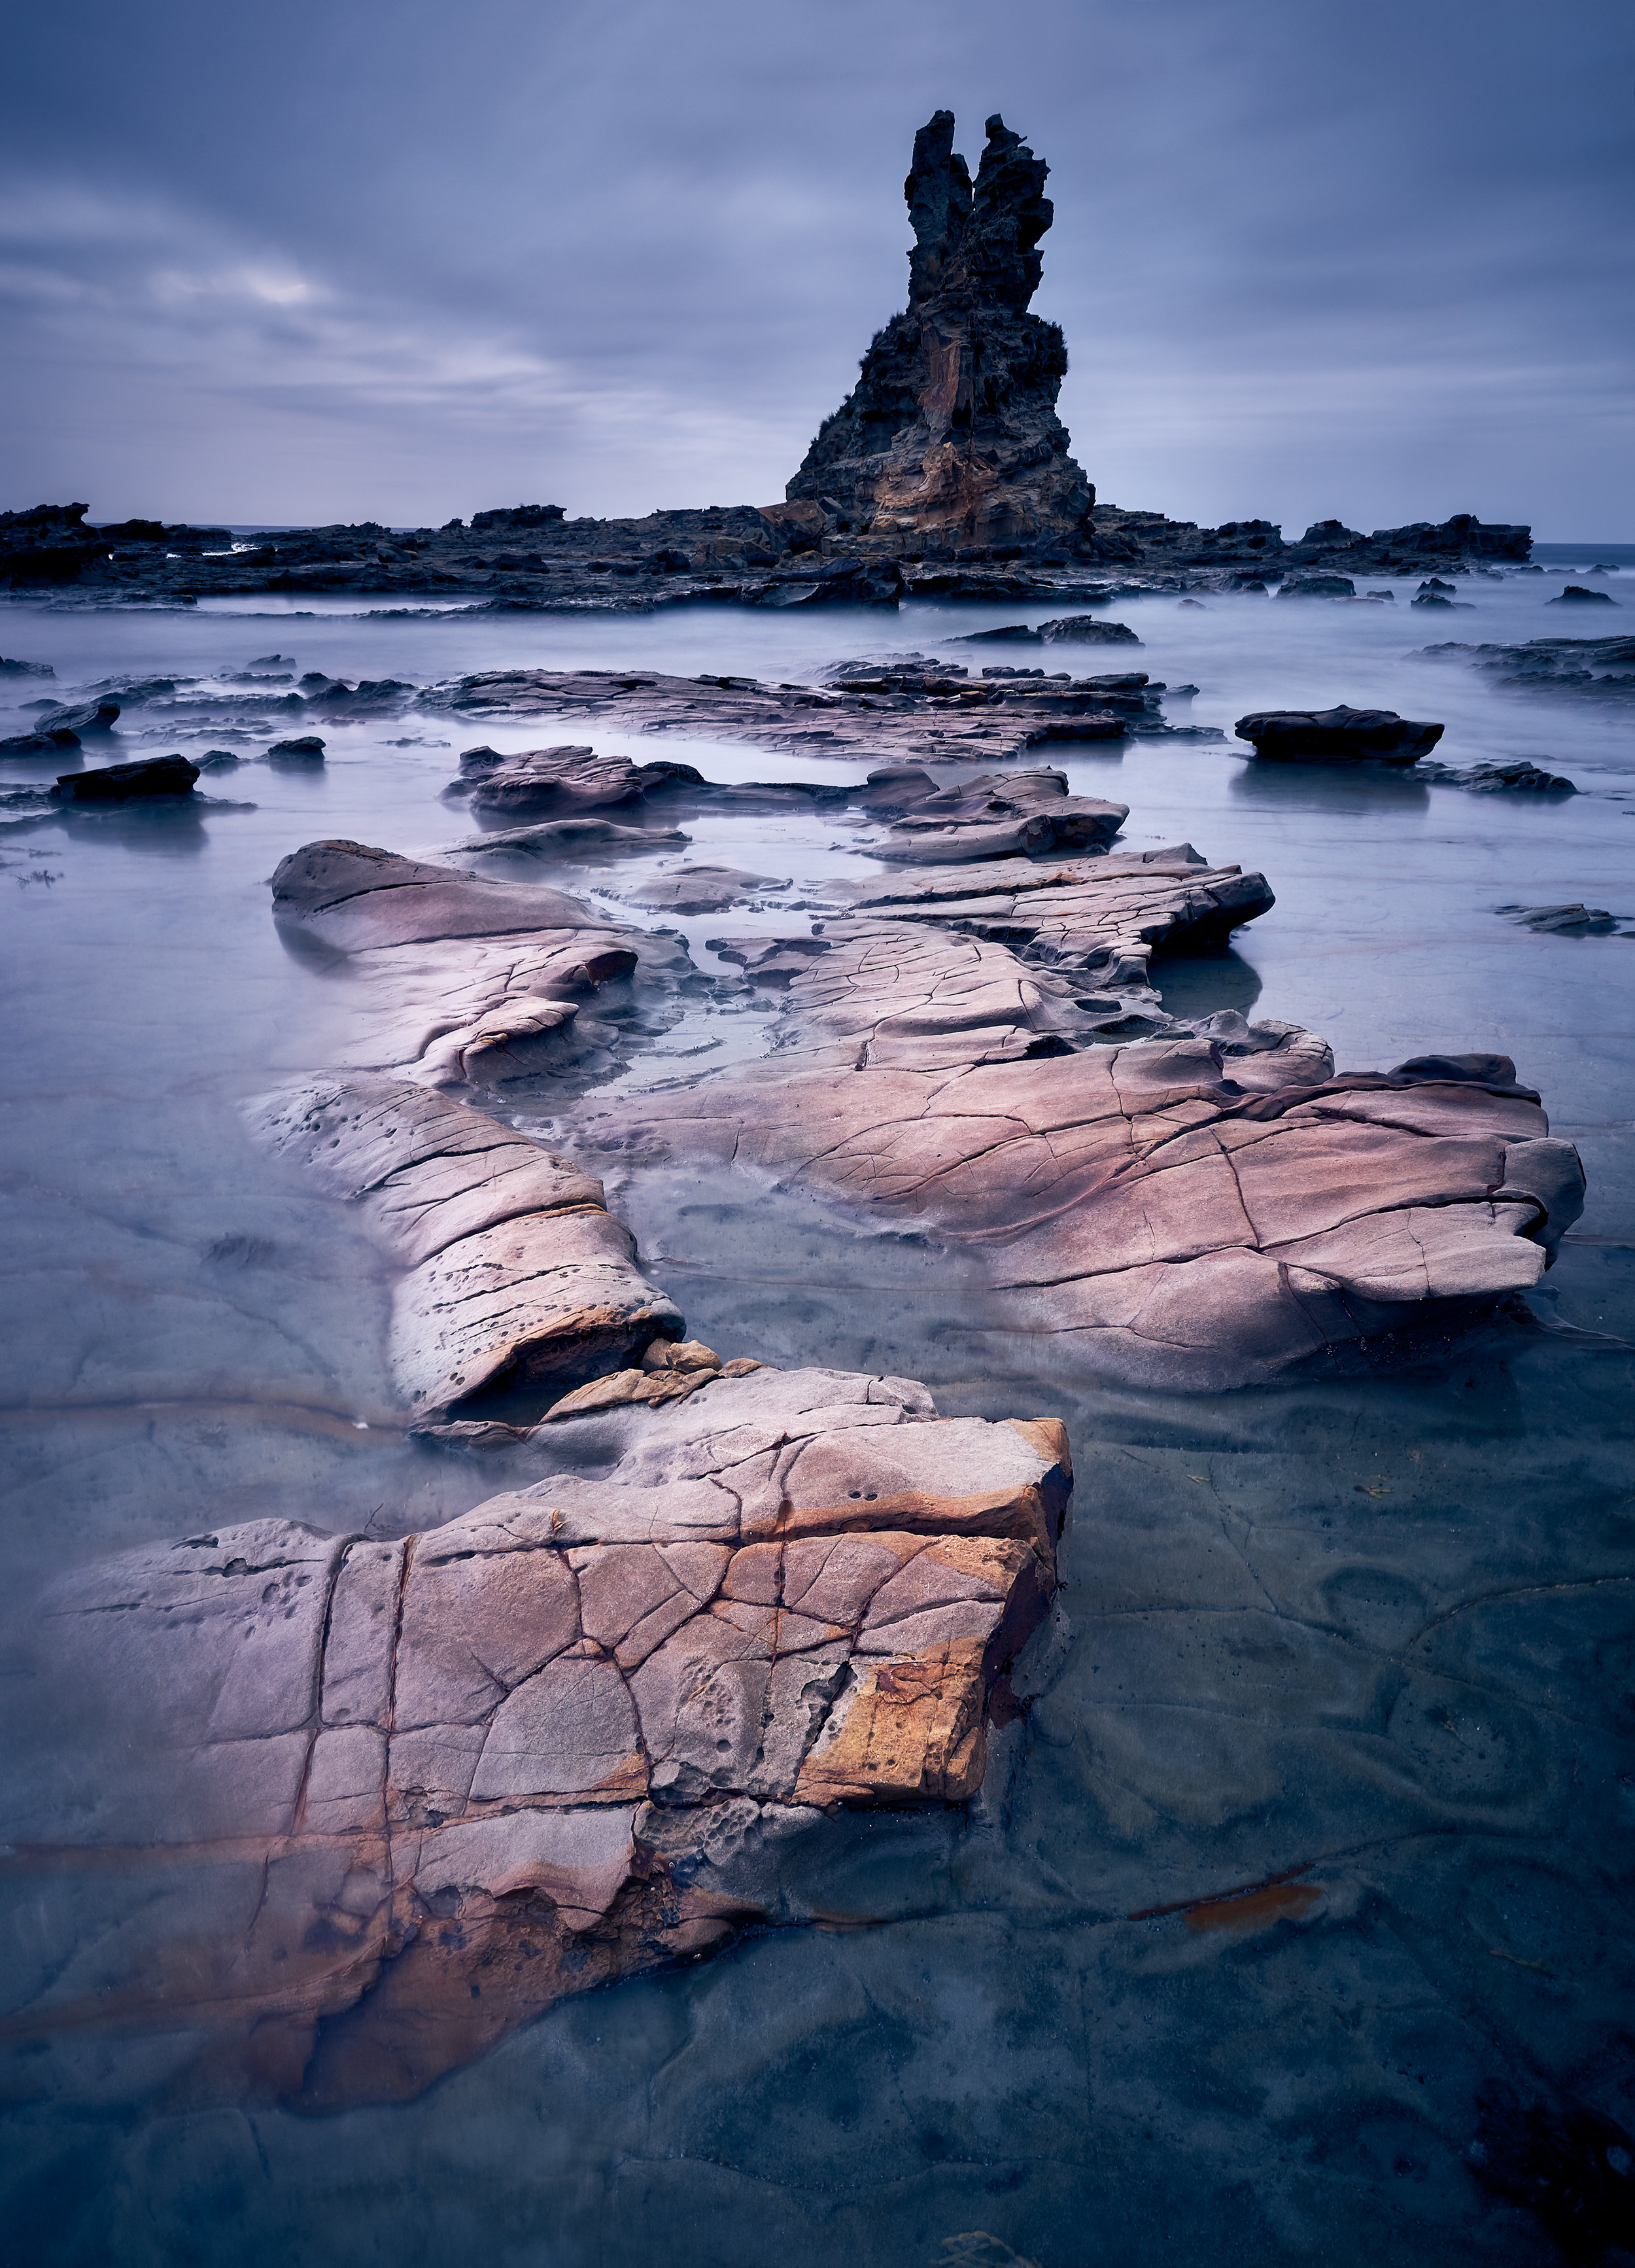 The Hidden Path to Black Eagle Rock |  Sometimes the world opens up and reveals a secret. It felt exactly so as I watched the ocean give way to these eroded features, revealing a secret path to the black rock at the edge of the ocean.